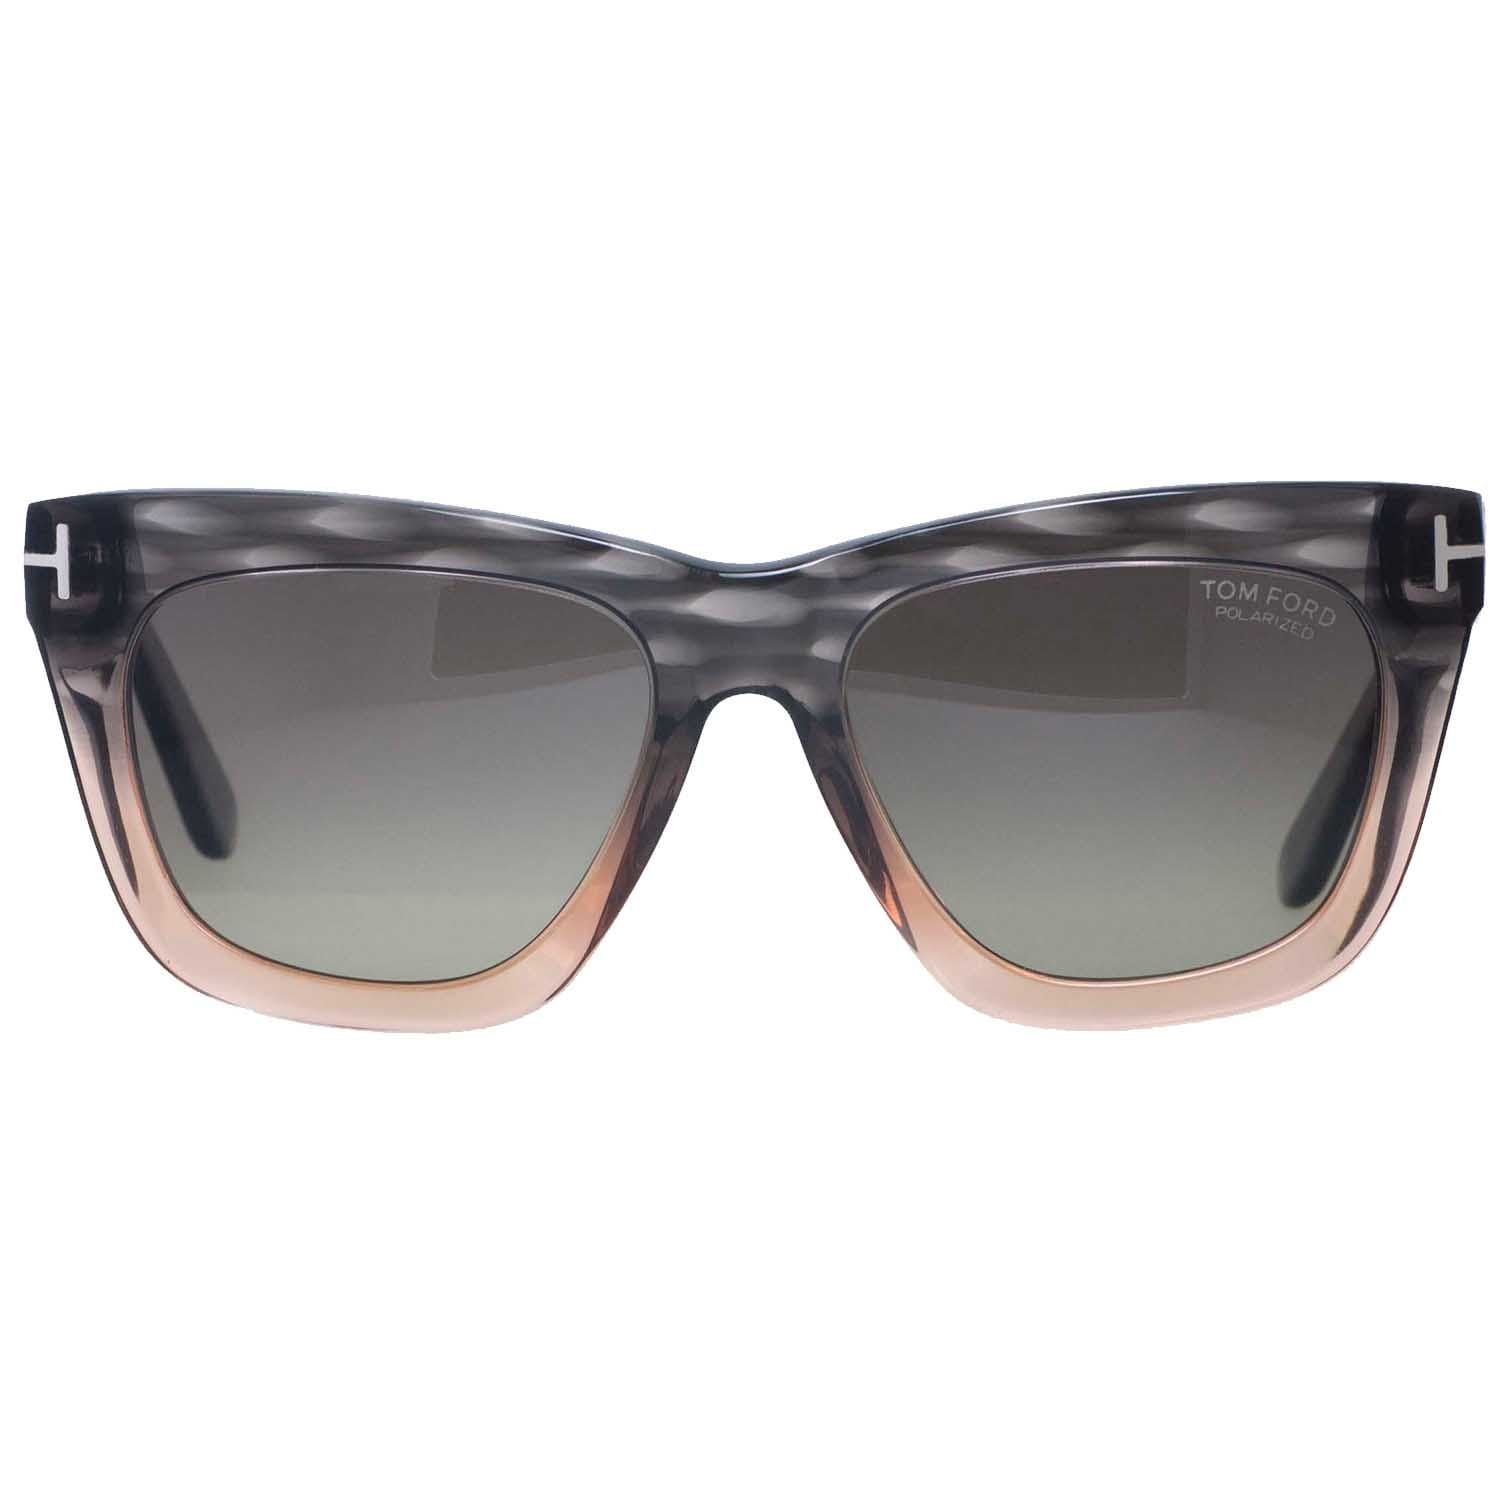 6a4c7c85461c Shop Tom Ford Celina TF361 20D Grey Peach Square Women s Polarized  Sunglasses - peach grey - 55mm-18mm-140mm - Free Shipping Today - Overstock  - 14050917